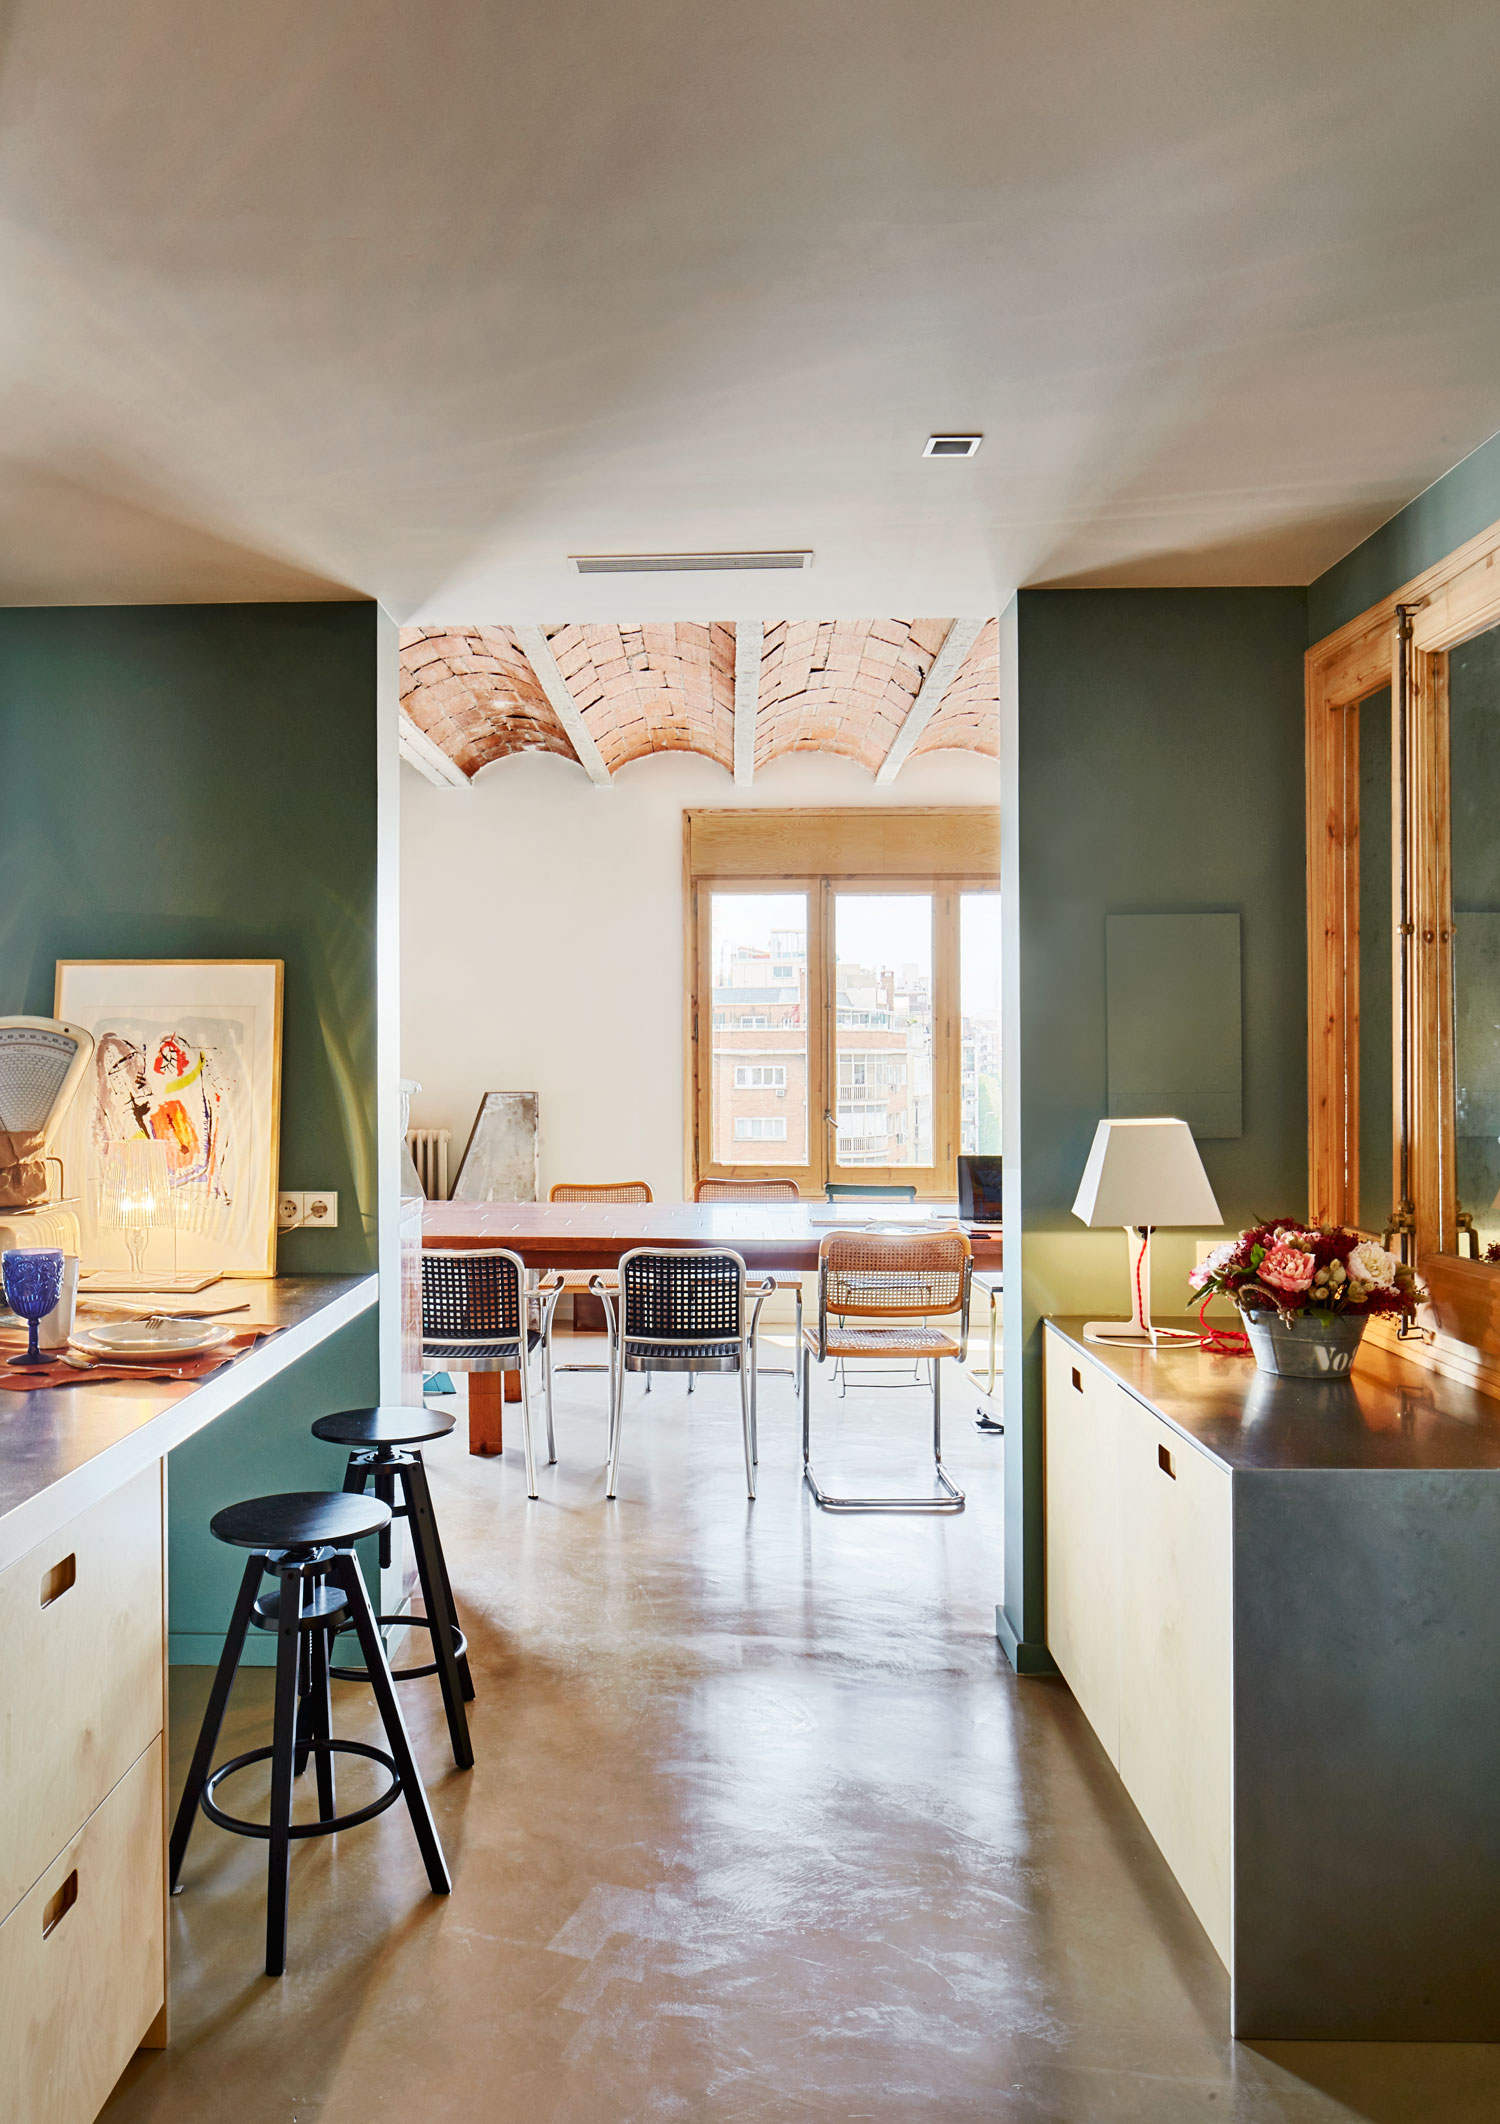 1930s Barcelona Apartment Refurbishment by Cirera + Espinet | Yellowtrace